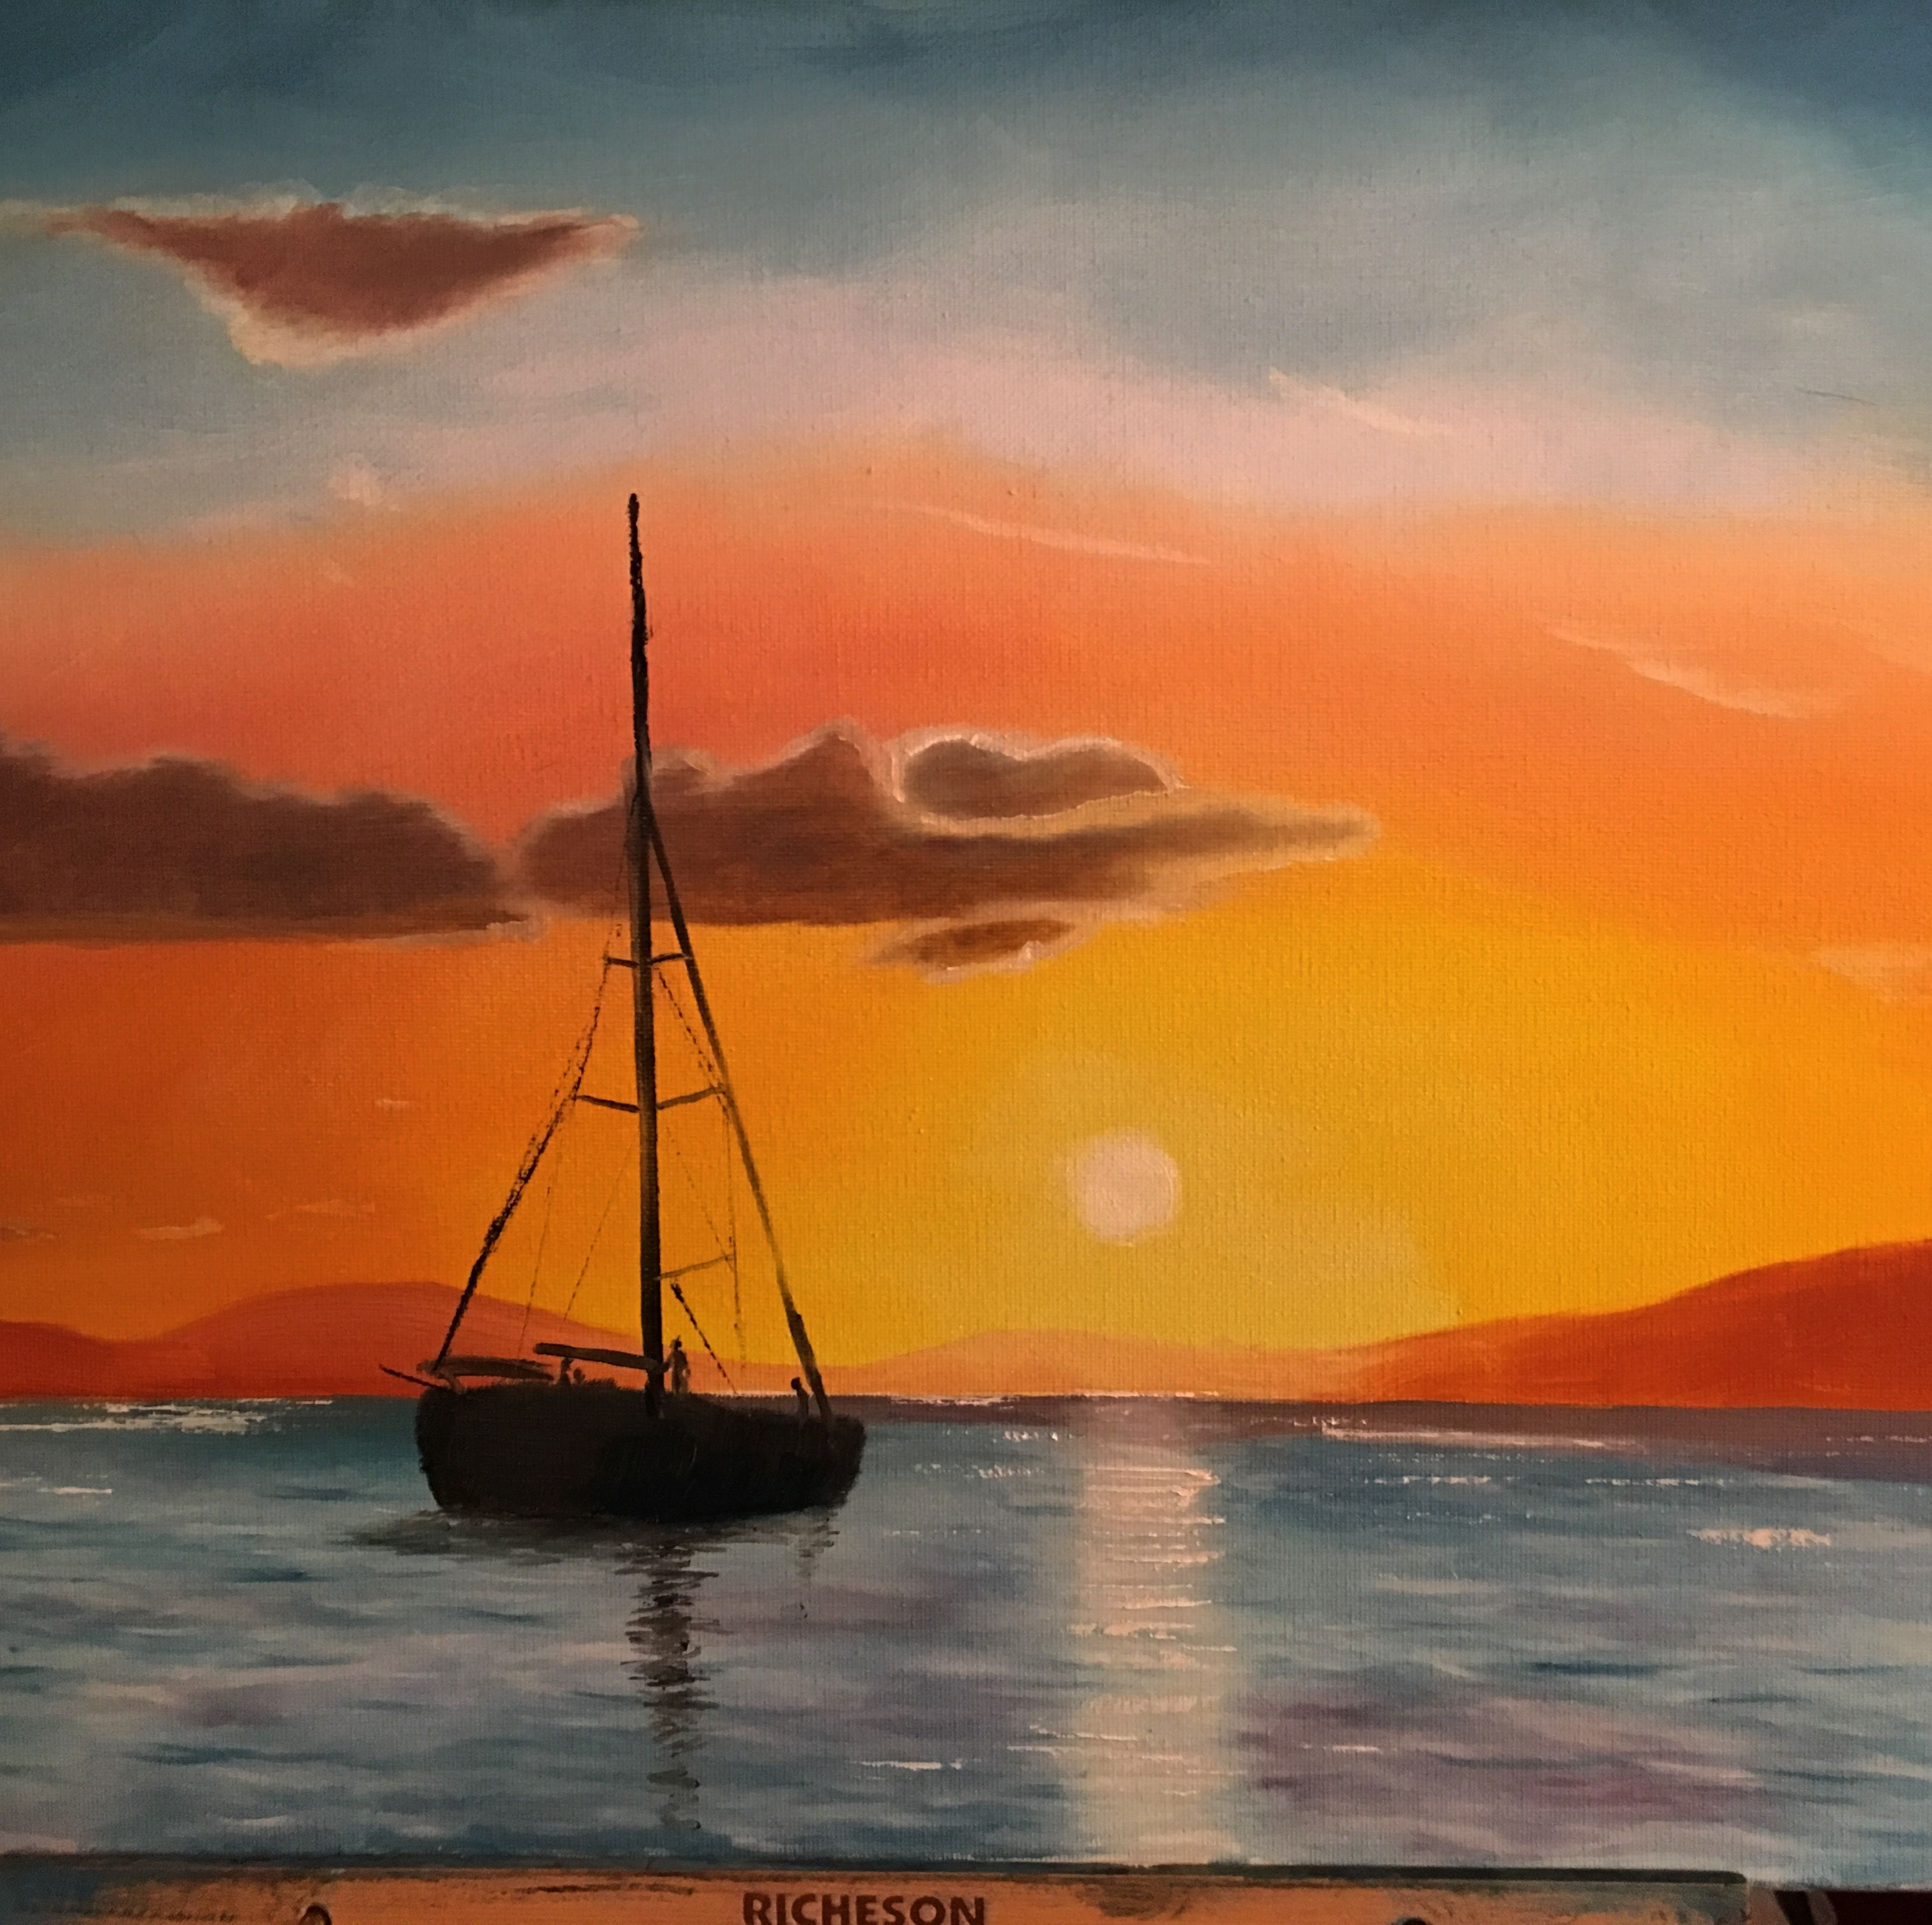 Boat on a lake at sunset oil painting 16x20 3212018